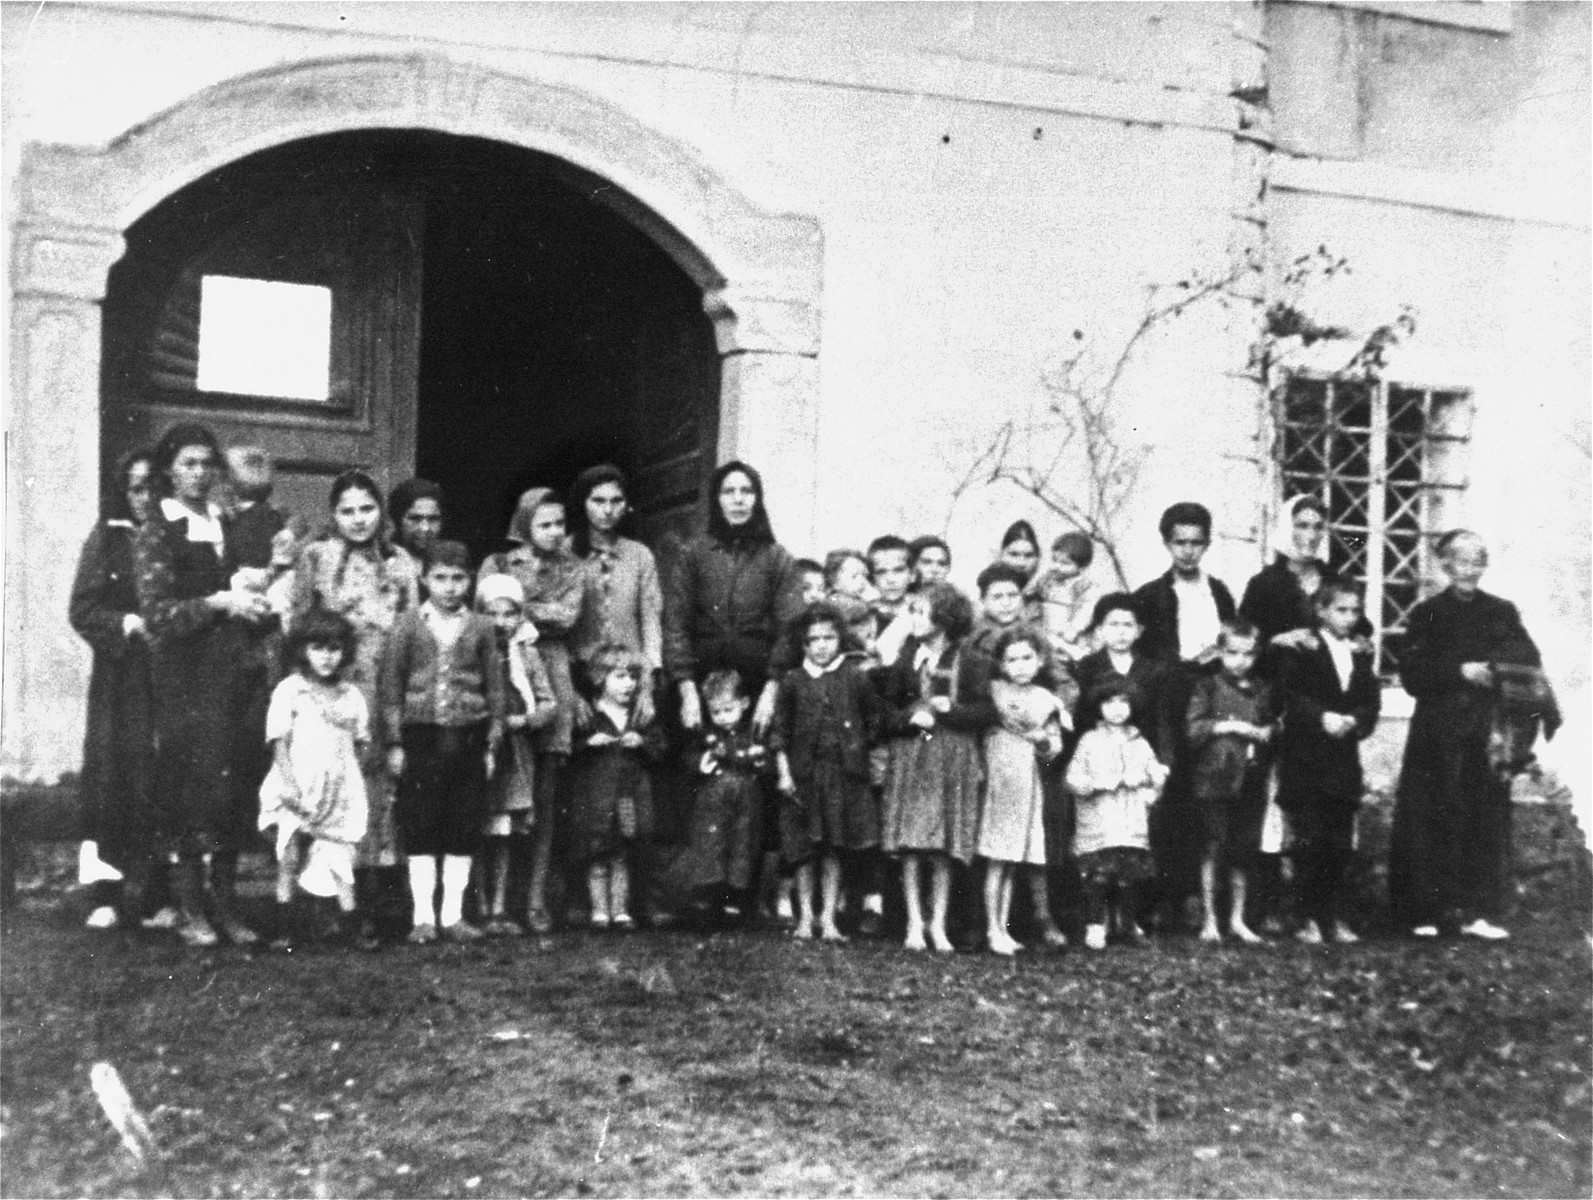 Group portrait of women and children in the Gornja Rijeka concentration camp.